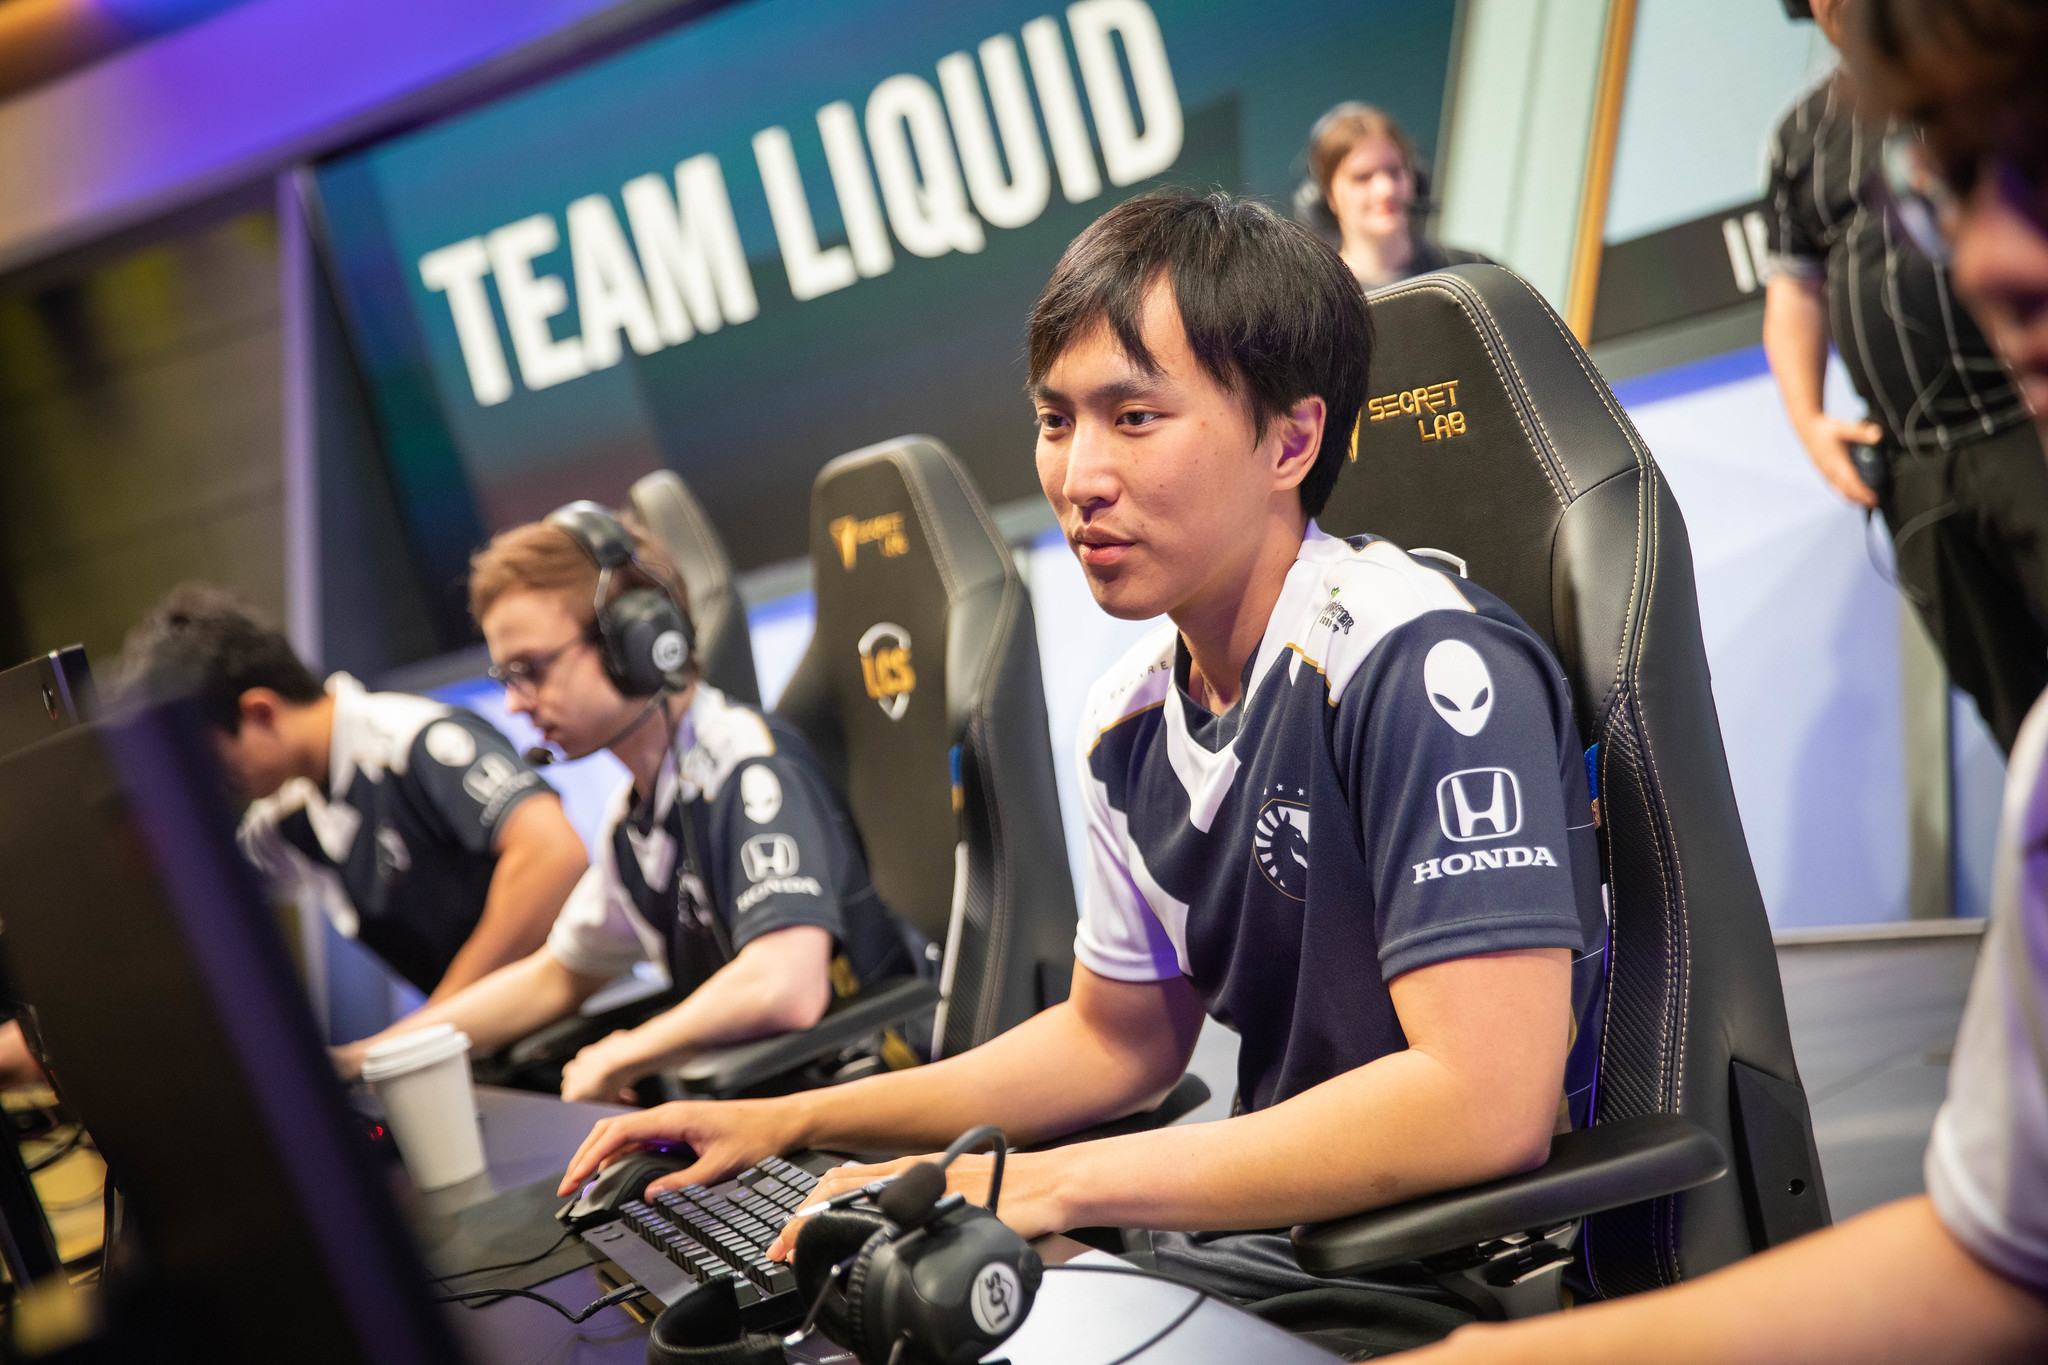 Doublelift Is Unaware About Cloud9 Not Wanting To Scrim Team Solo Mid According To Travis Gafford